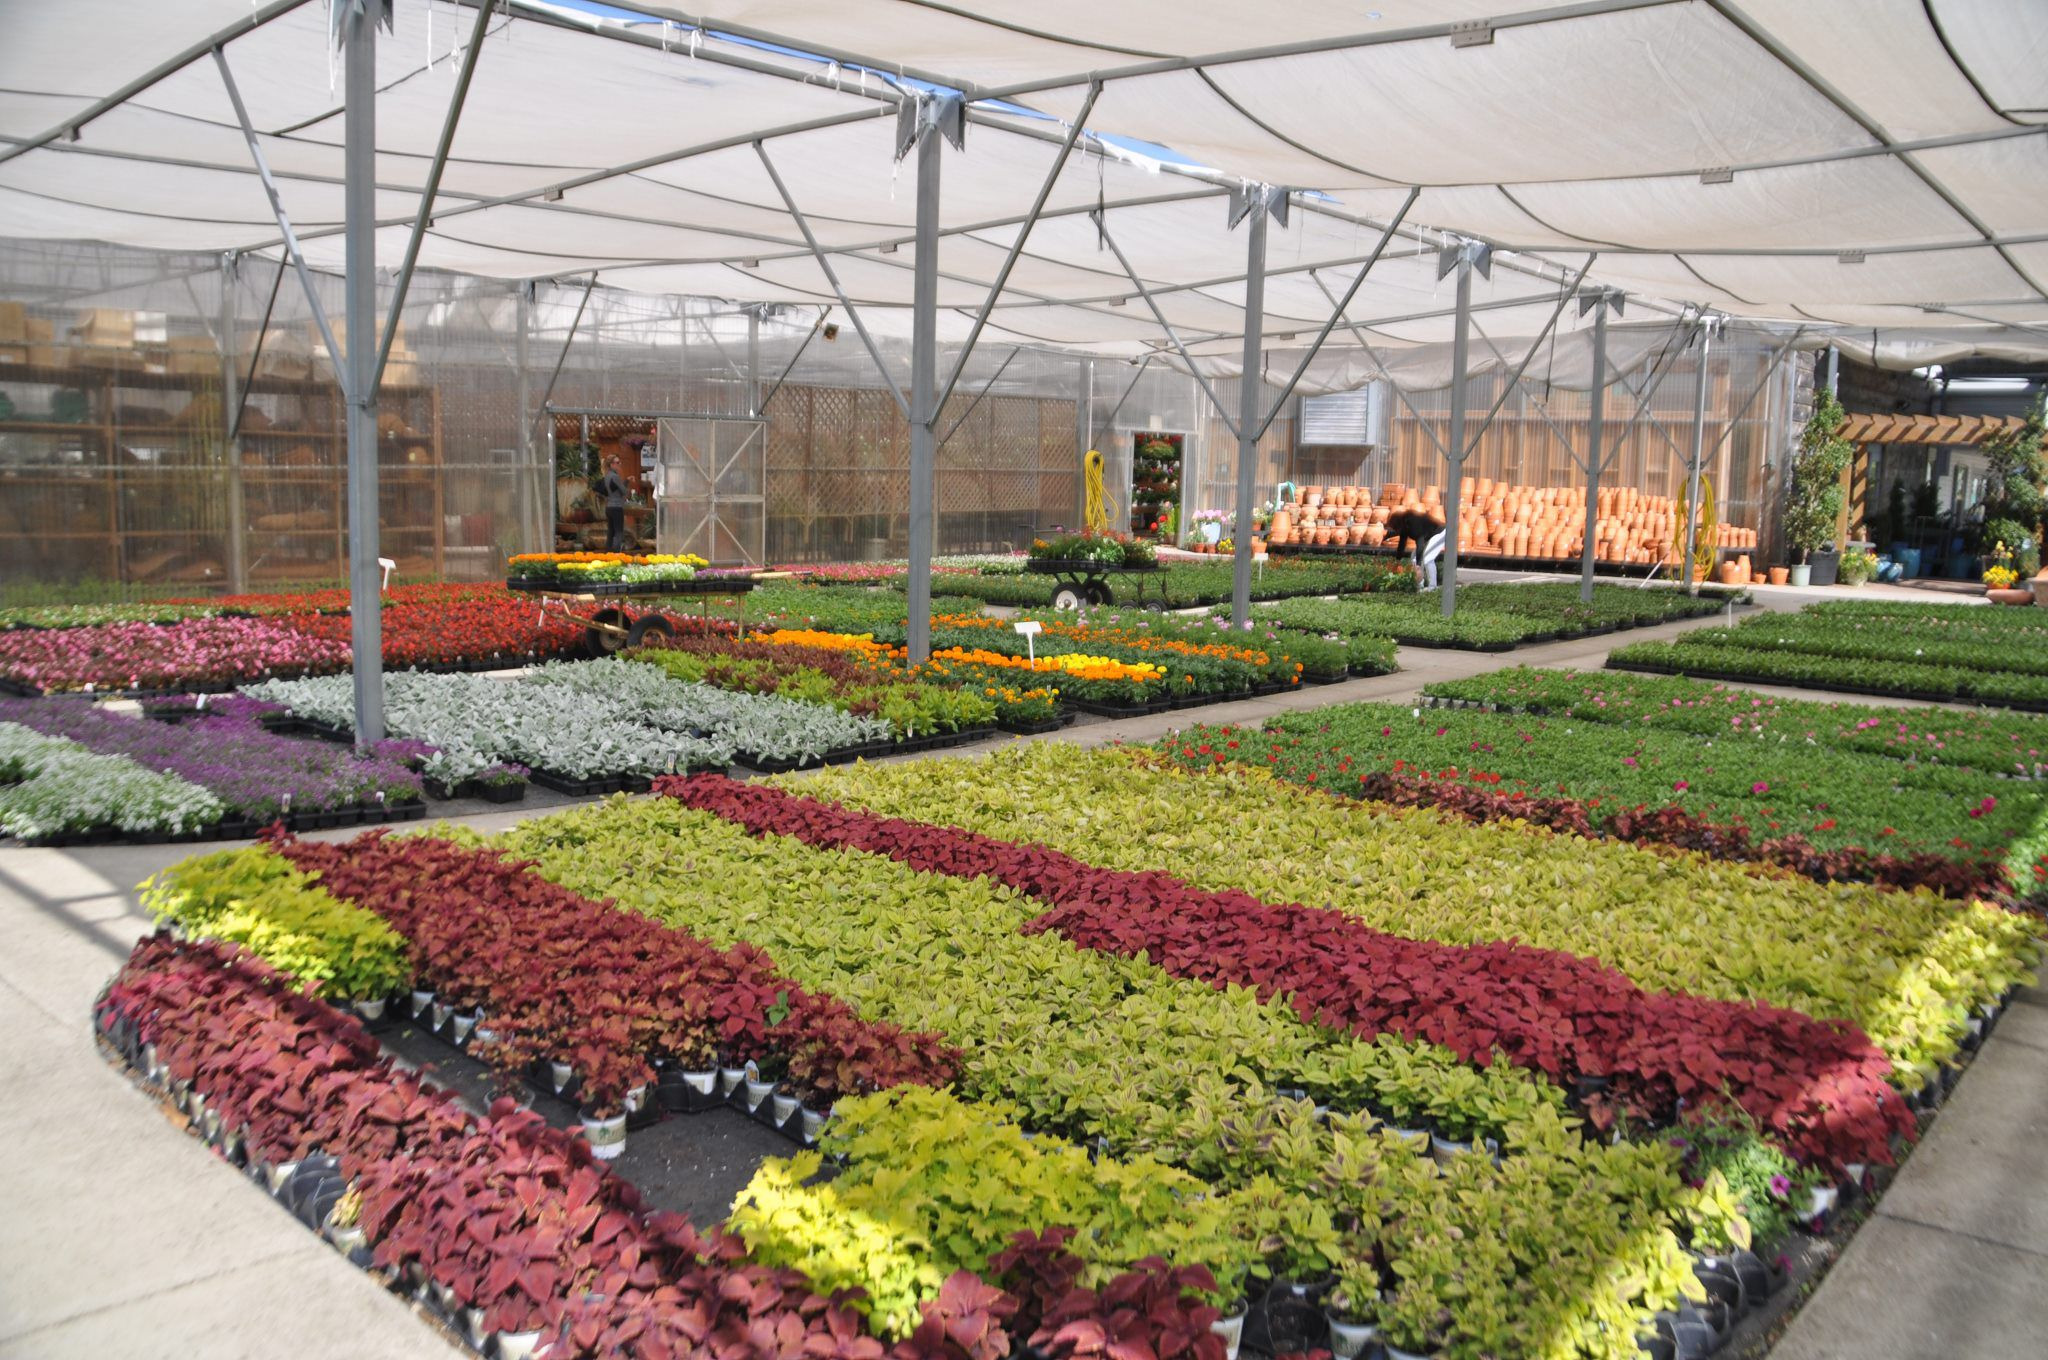 The Best Nurseries and Garden Centers in Charlotte